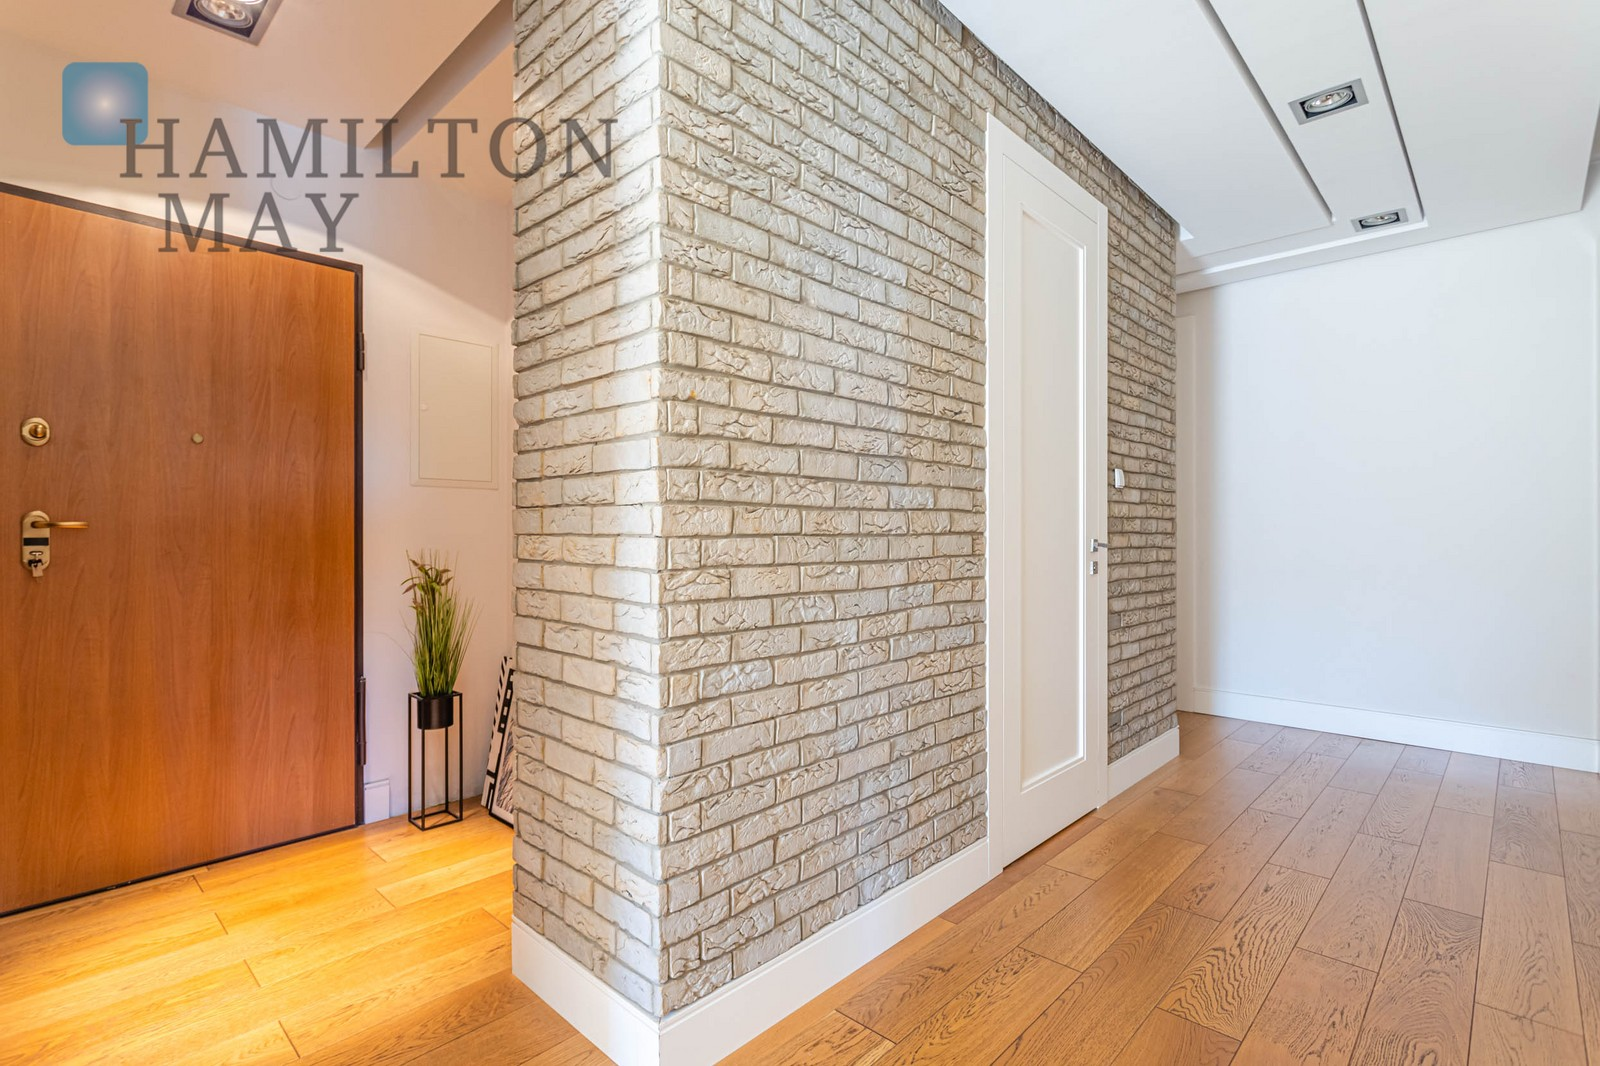 Penthouse with a 170 sqm terrace in Miasteczko Wilanow Warsaw for sale